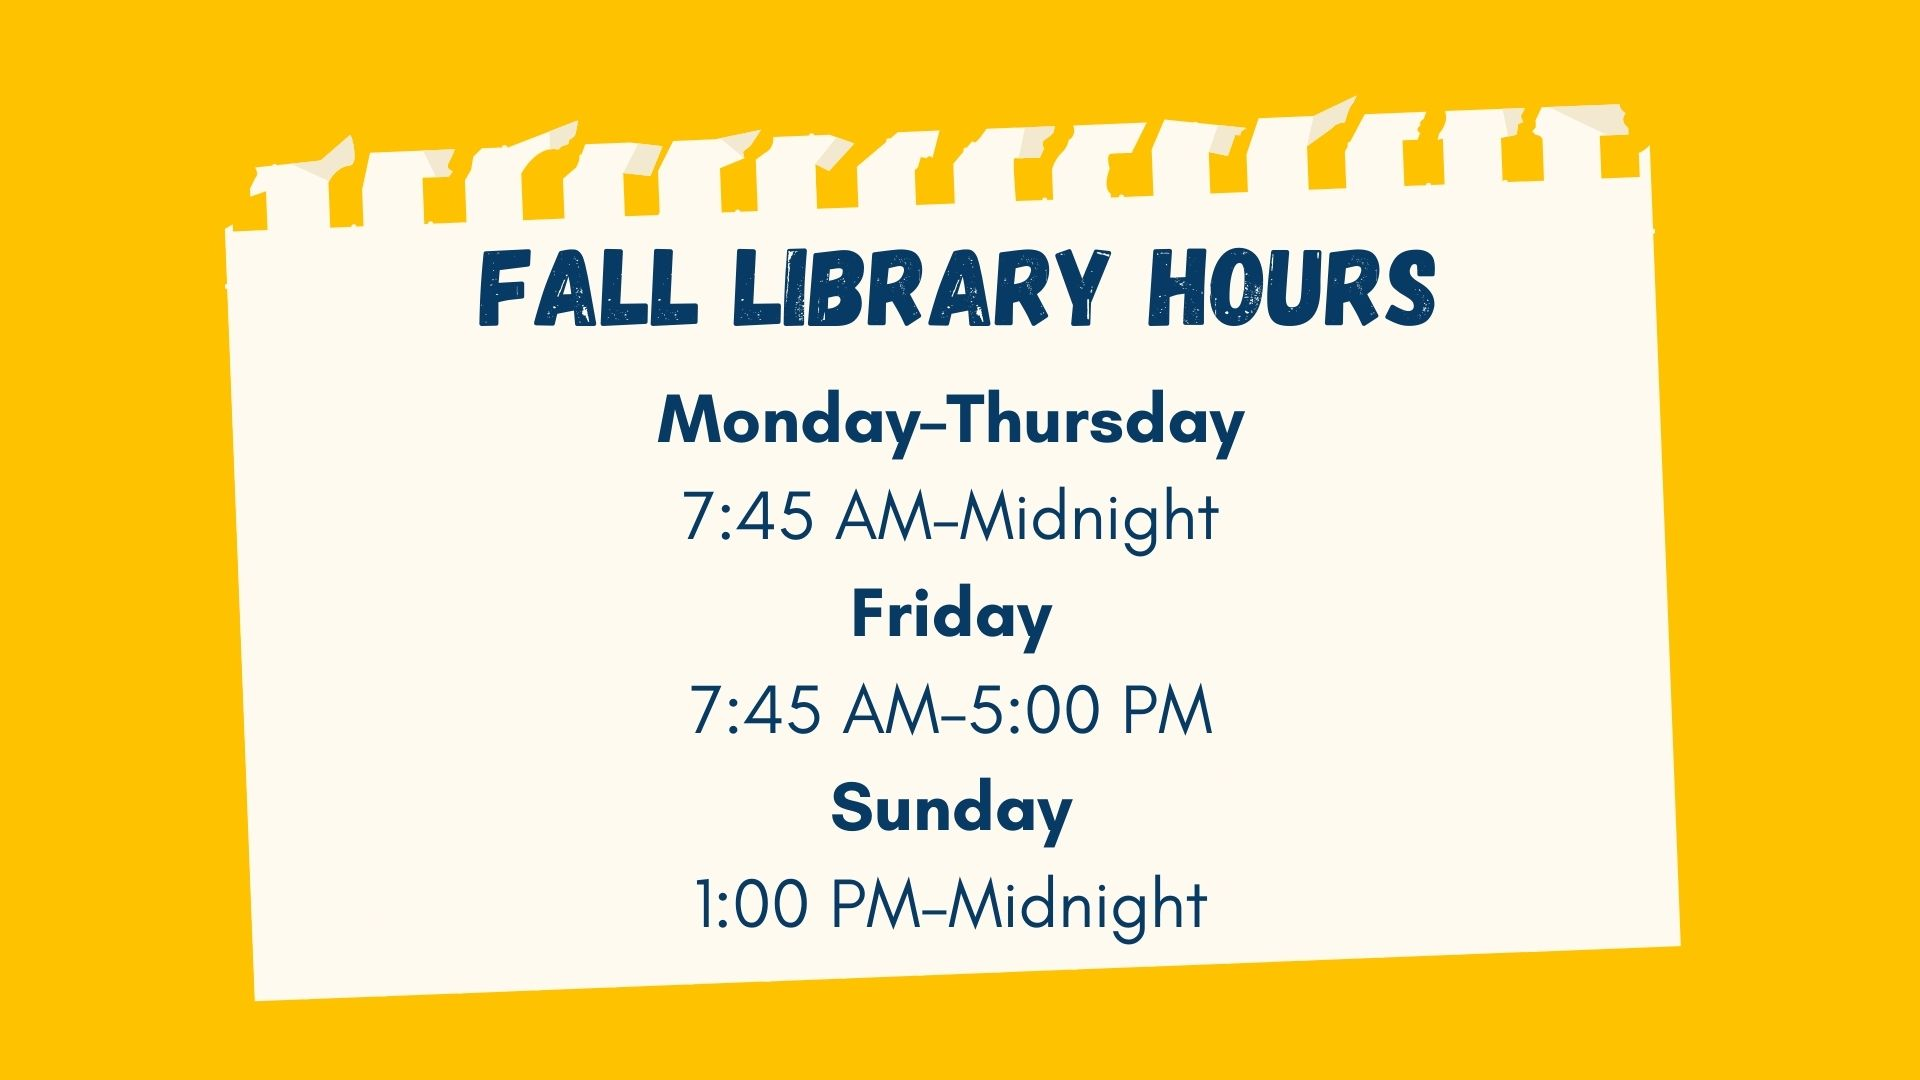 The library is open from 7:45 AM to midnight, Monday through Thursday. It closes at 5 on Friday and opens from 1:00 to midnight on Sunday.